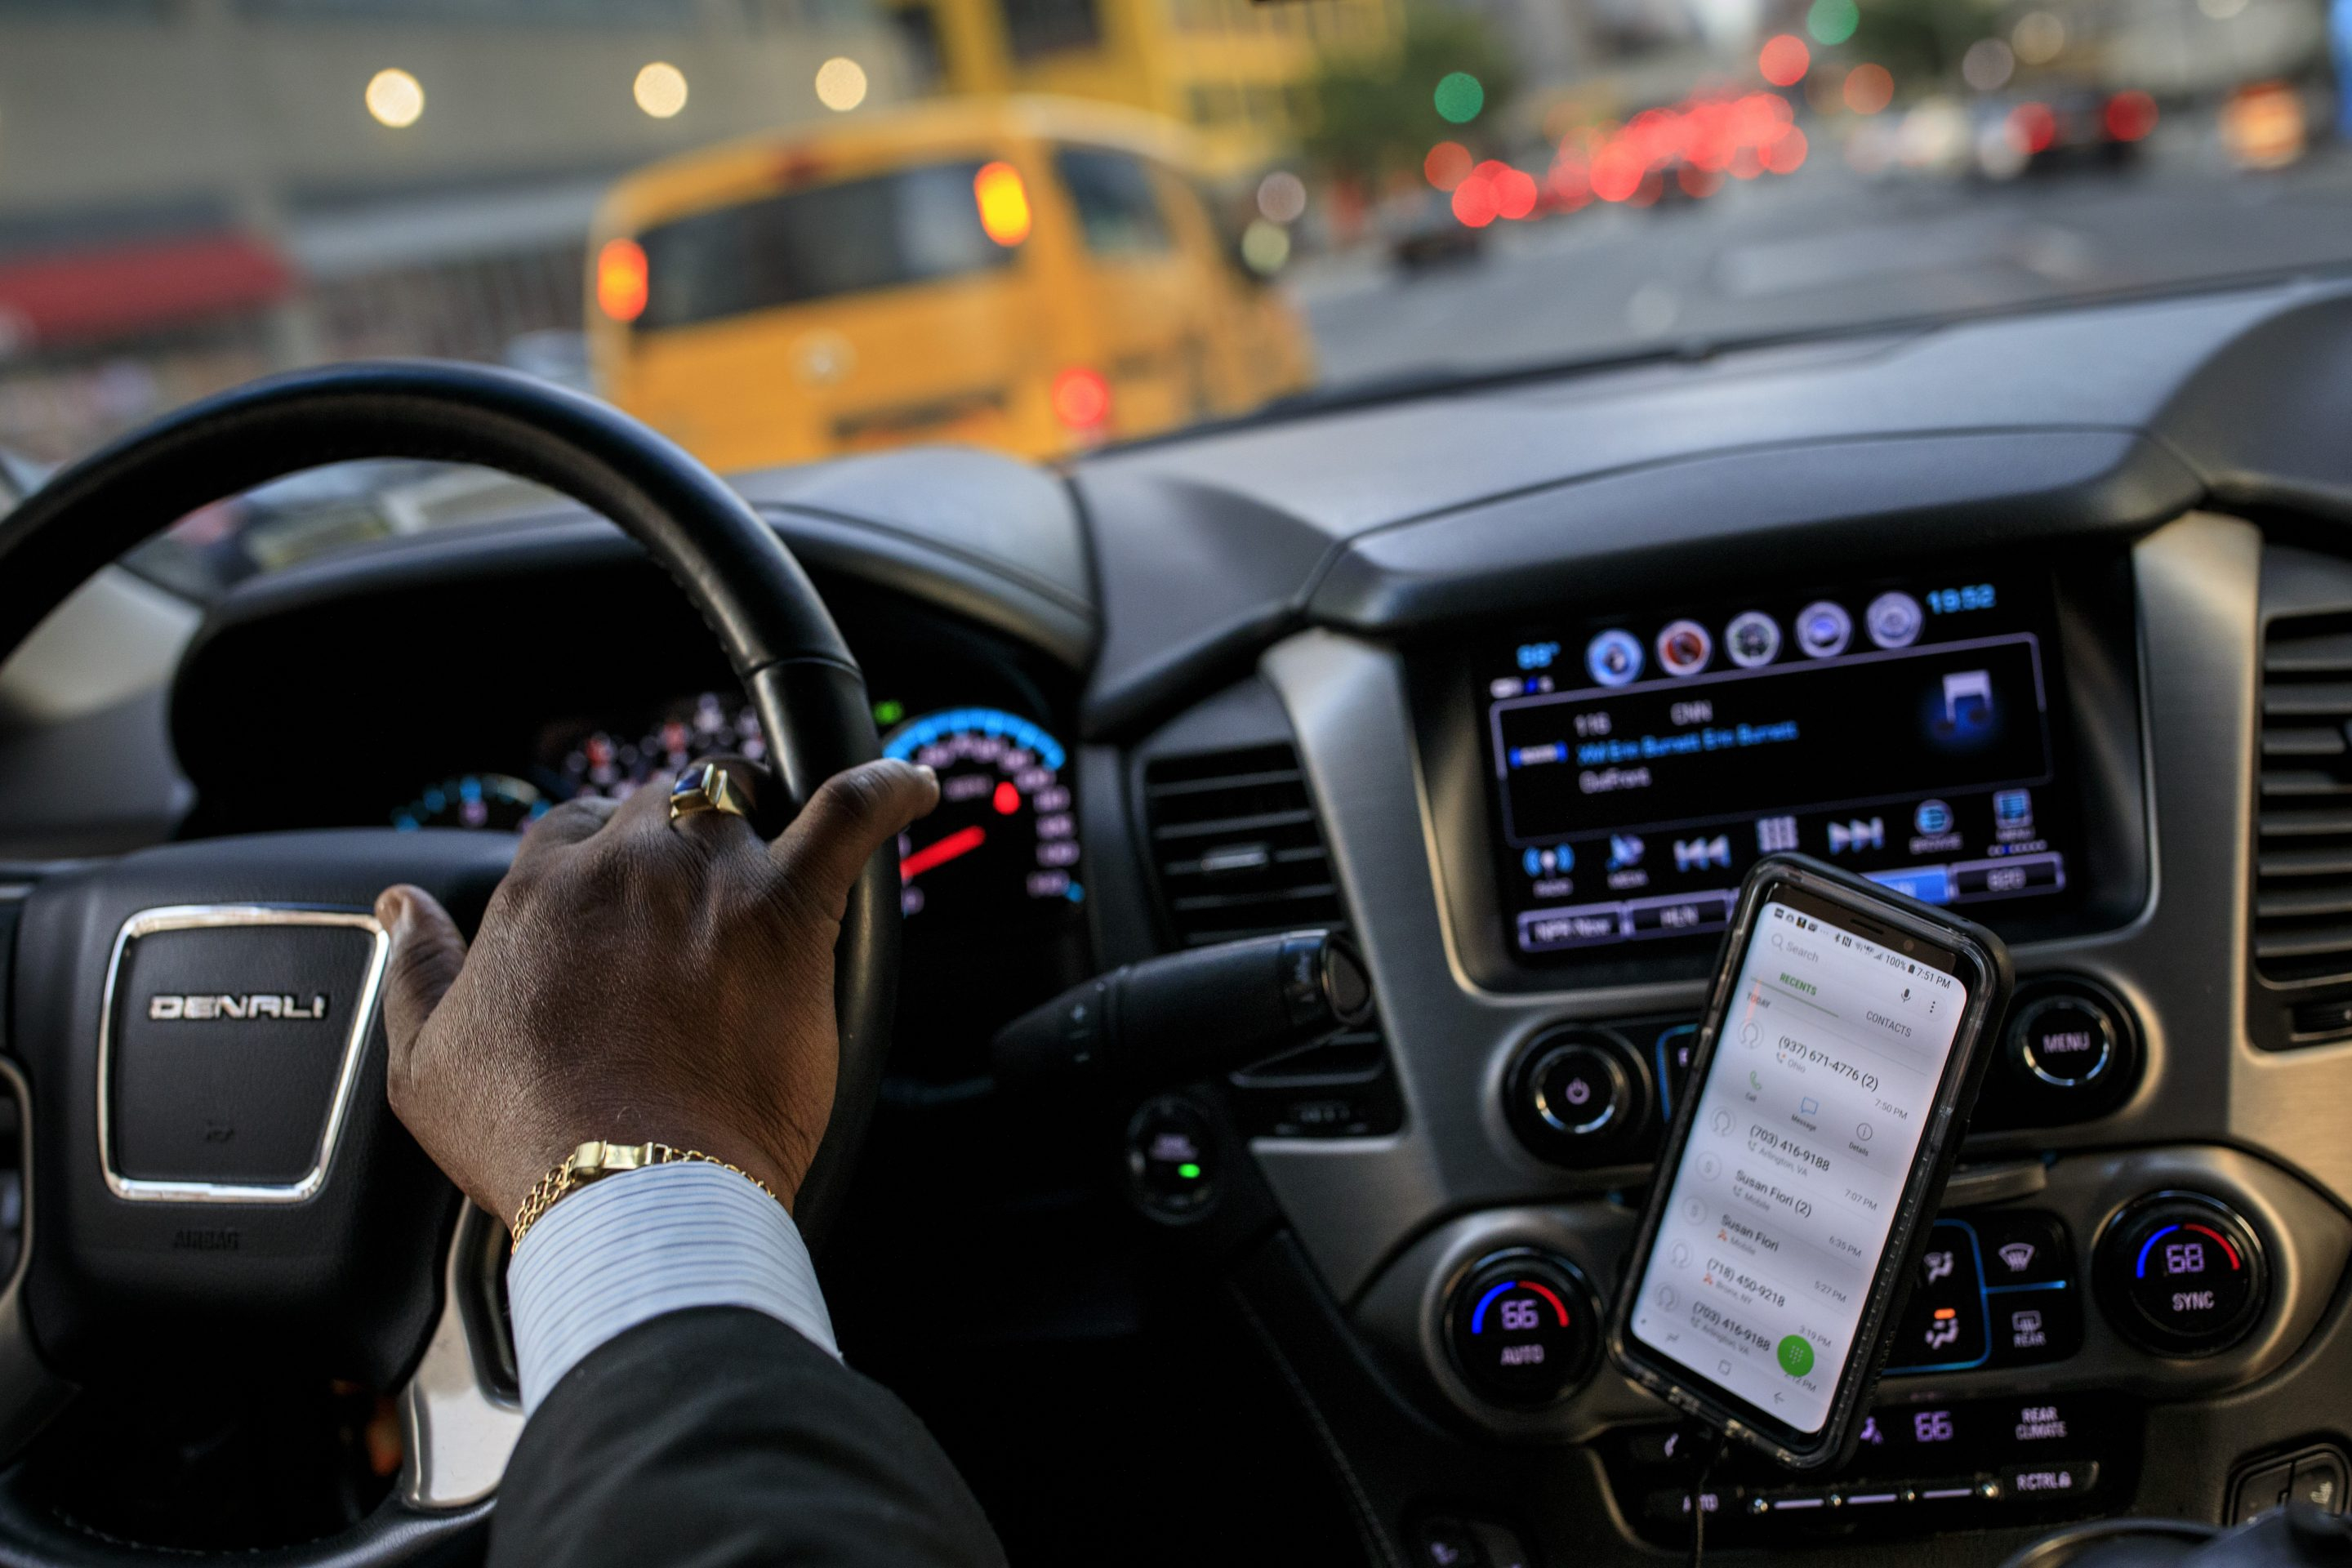 Johan Nijman, a for-hire driver who runs his own service and also drives for Uber on the side, drives through Manhattan on Aug. 8, 2018, in New York City.